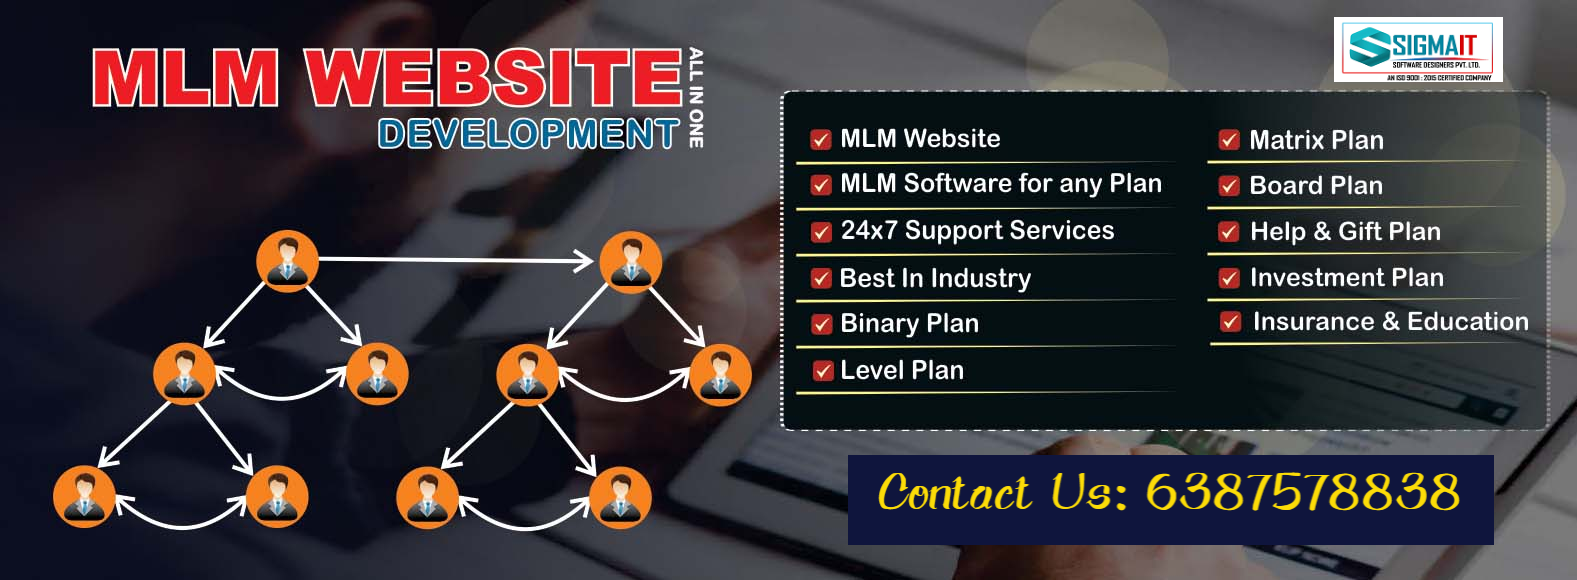 Best MLM Software- Sigma IT Software Company, Lucknow